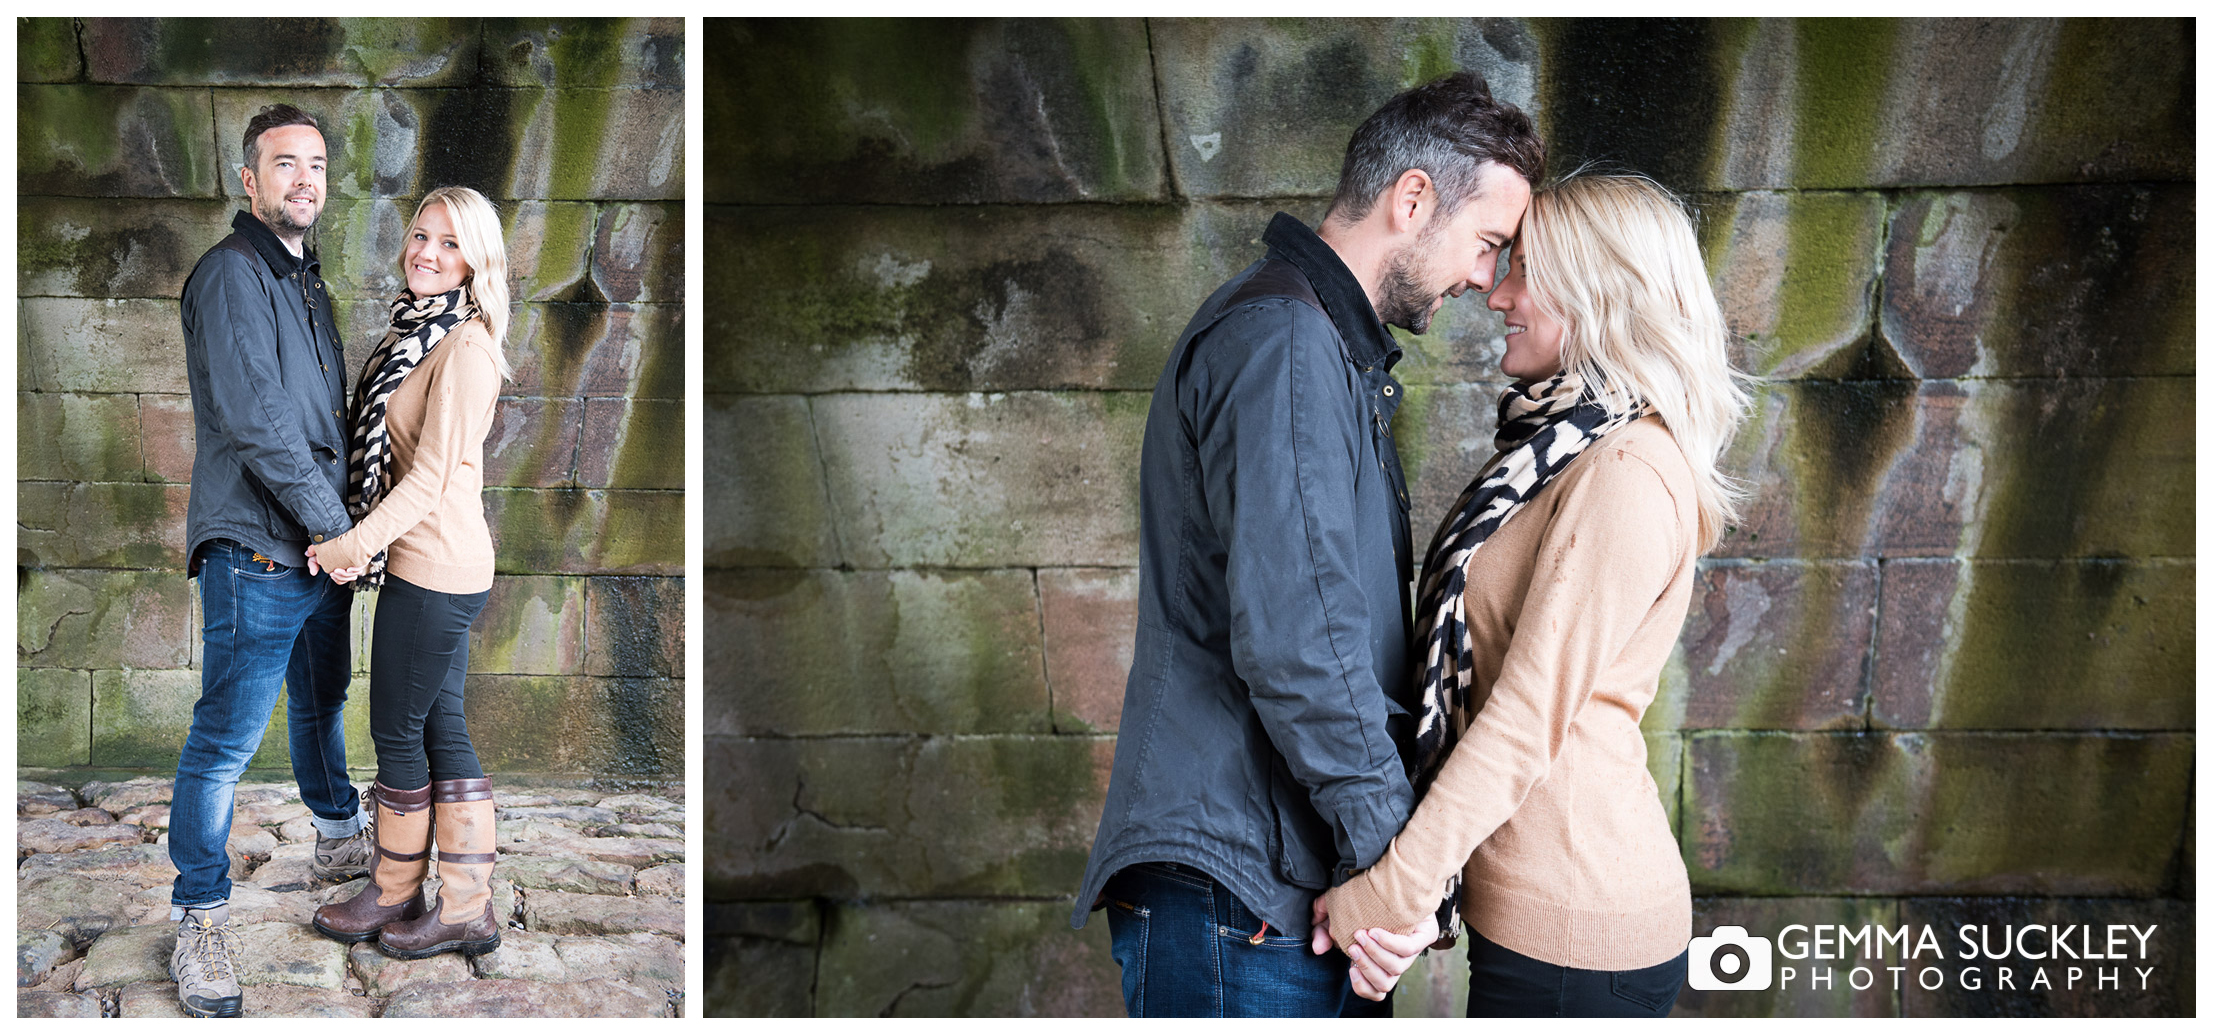 A couple under the bridge in Burnsall during their engagement photos shoot